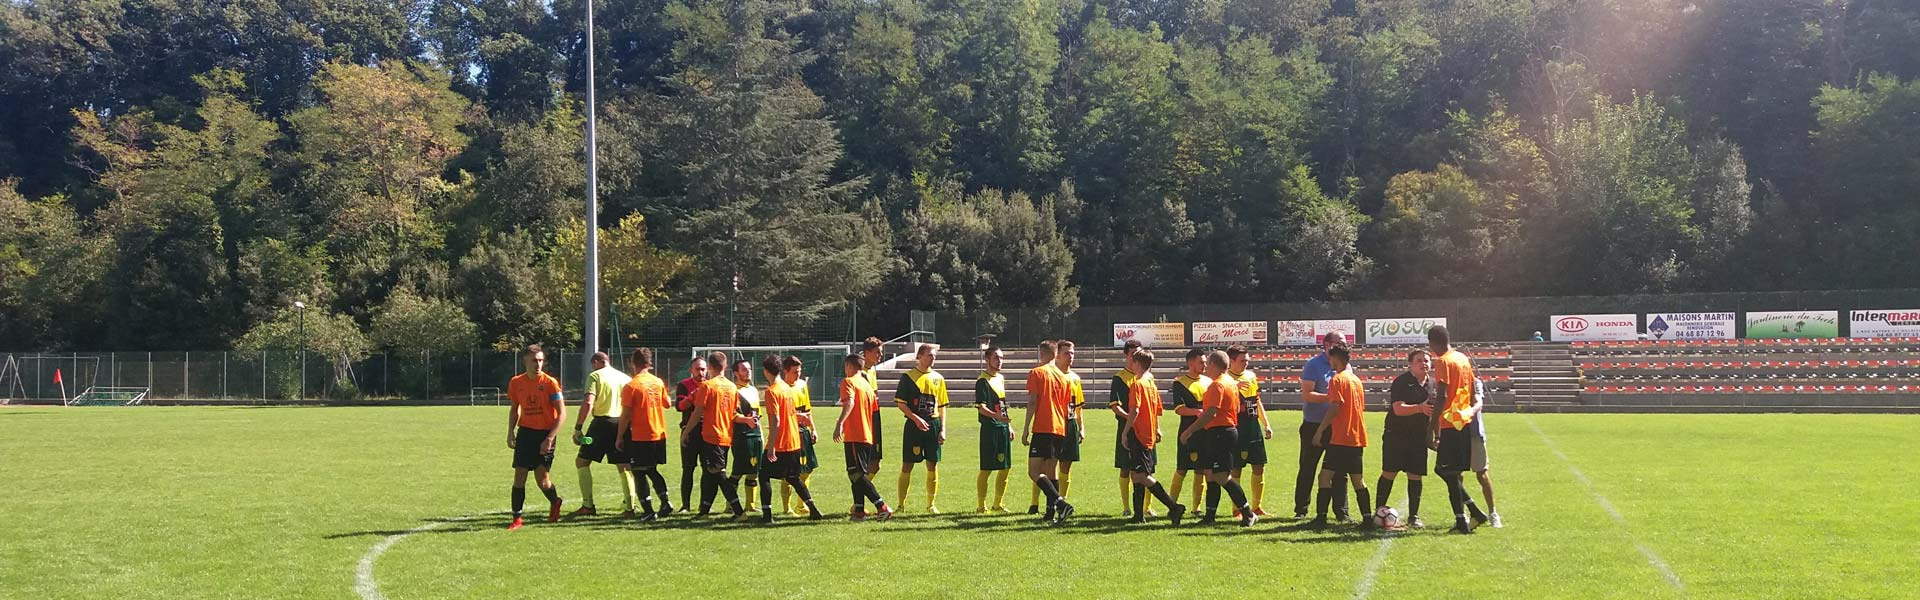 CERET FC 2 vs F.C. FOURQUES